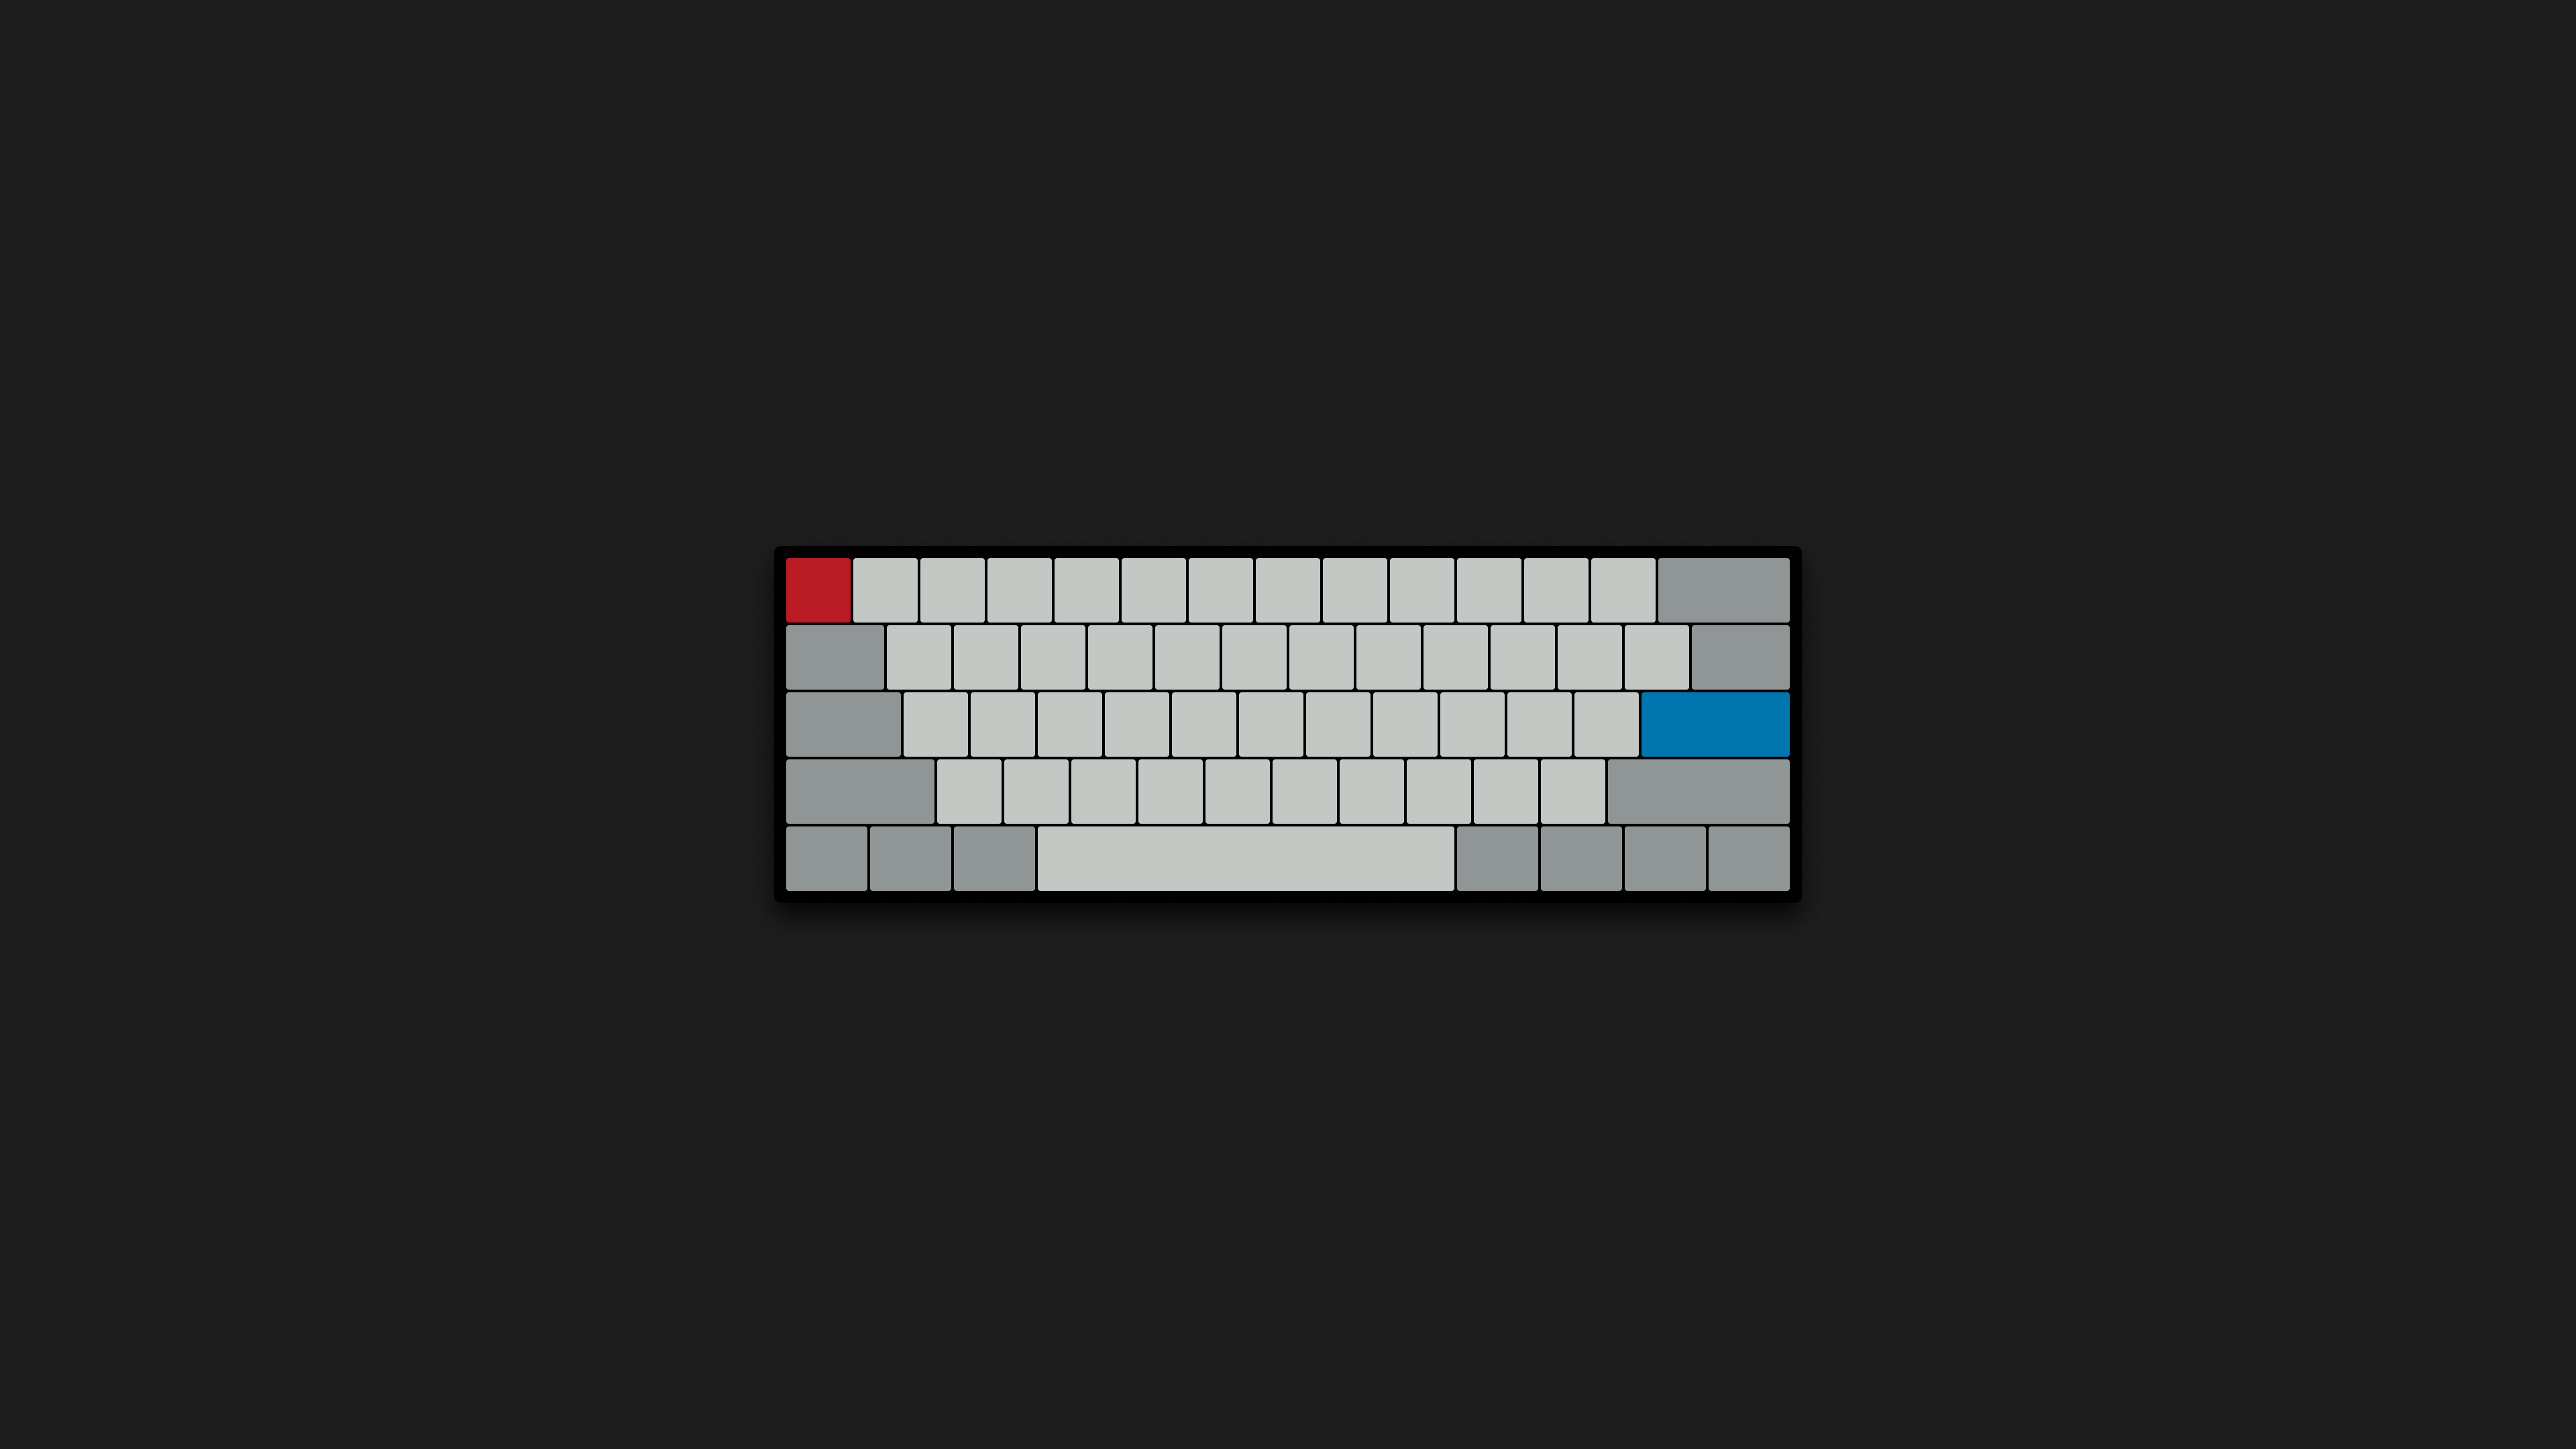 Keyboard Art 4k Minimal Keyboard Wallpapers Even More This Time Wallpaper Keyboard Minimalism